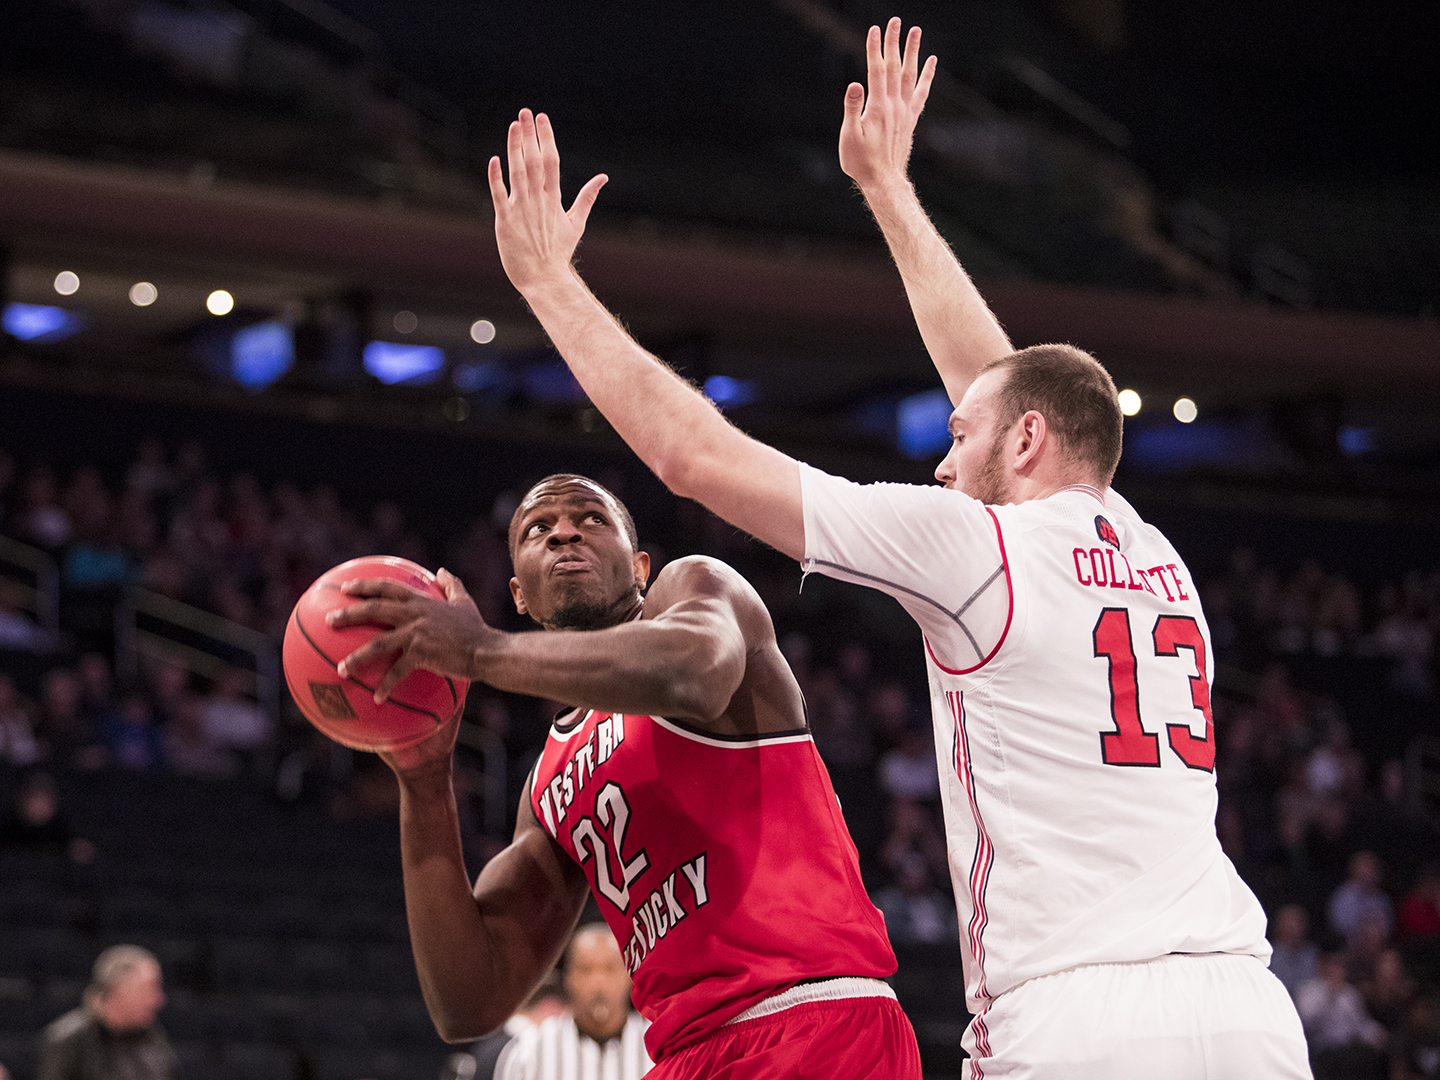 WKU forward Dwight Coleby is defended by Utah's forward David Collette during the semifinals of the NIT Championship in Madison Square Garden on March 27. WKU lost 69-64.